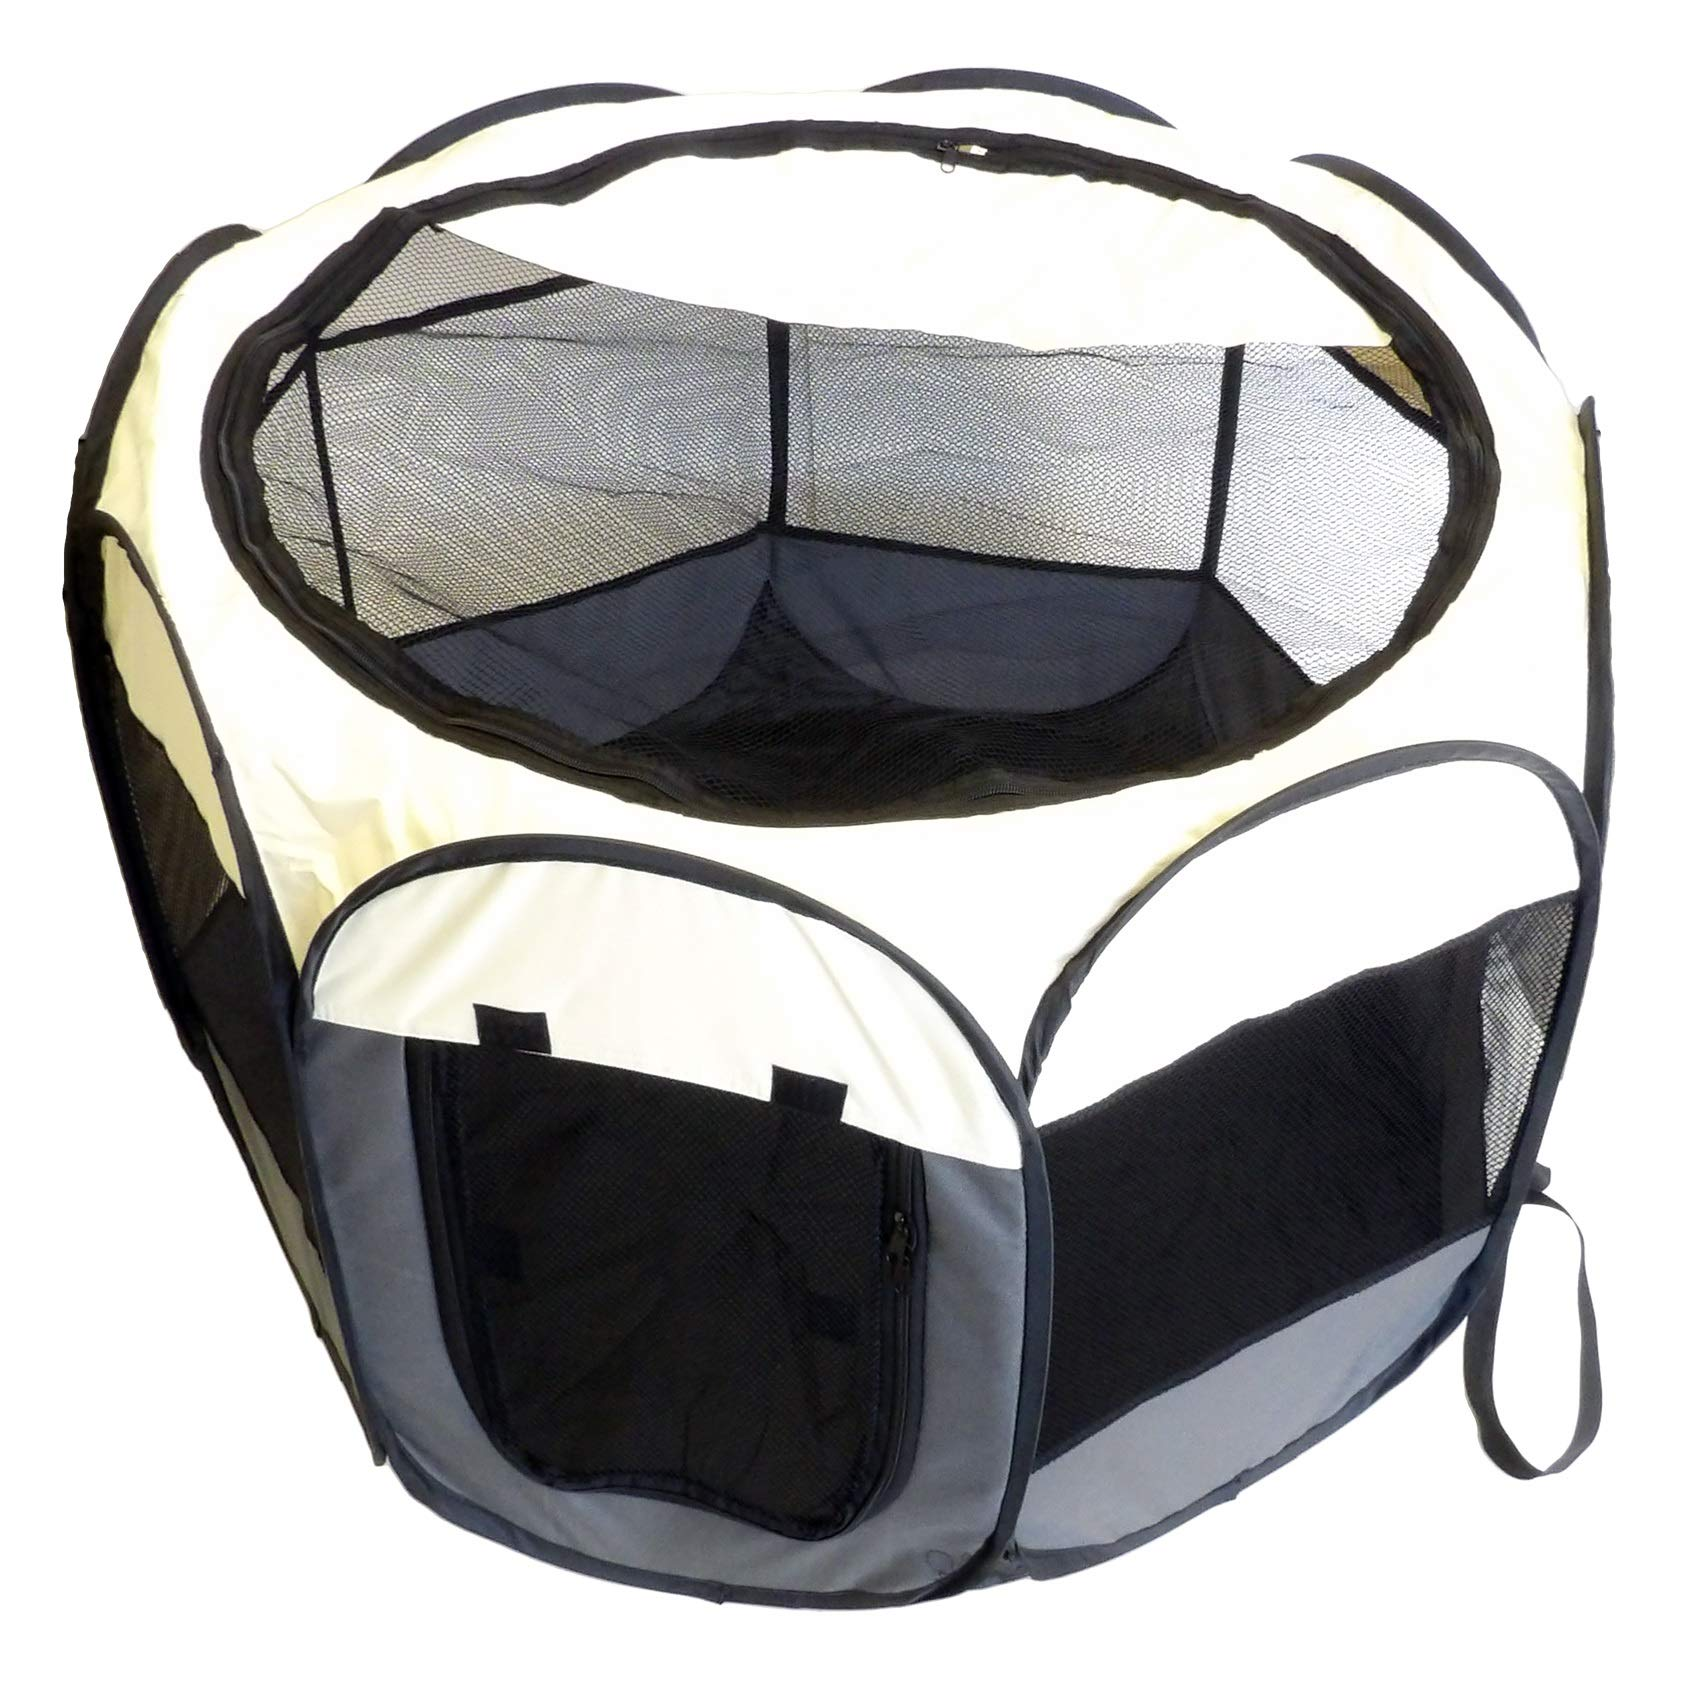 Companion Gear Portable Fabric, Water-Resistant Dog Play Pen - Perfect for Small to Medium Sized Dogs, Great for Travel, Indoor & Outdoor Use by Companion Gear